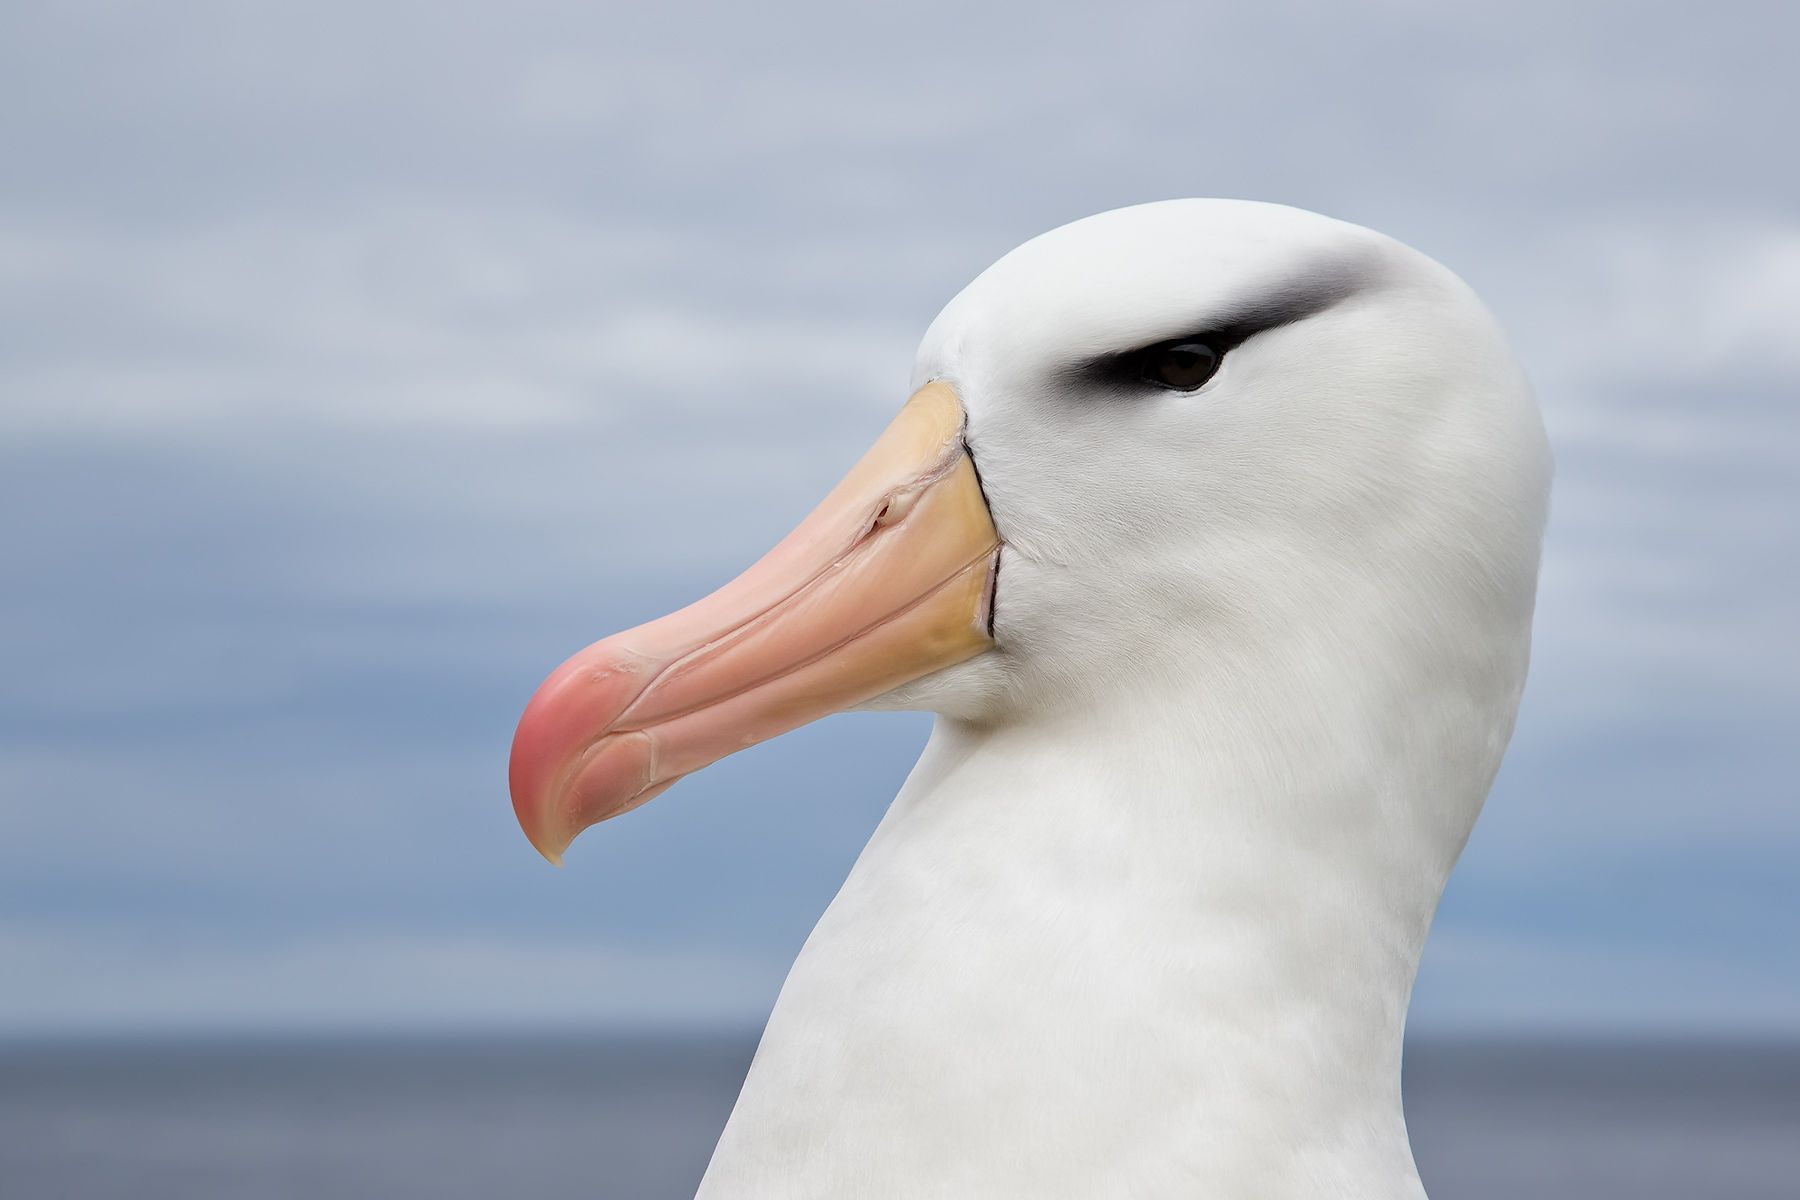 Black-browed-Albatross-head-portrait-against-blue-sky-and-sea_E7T4827-Steeple-Jason,-Falkland-Islands.jpg